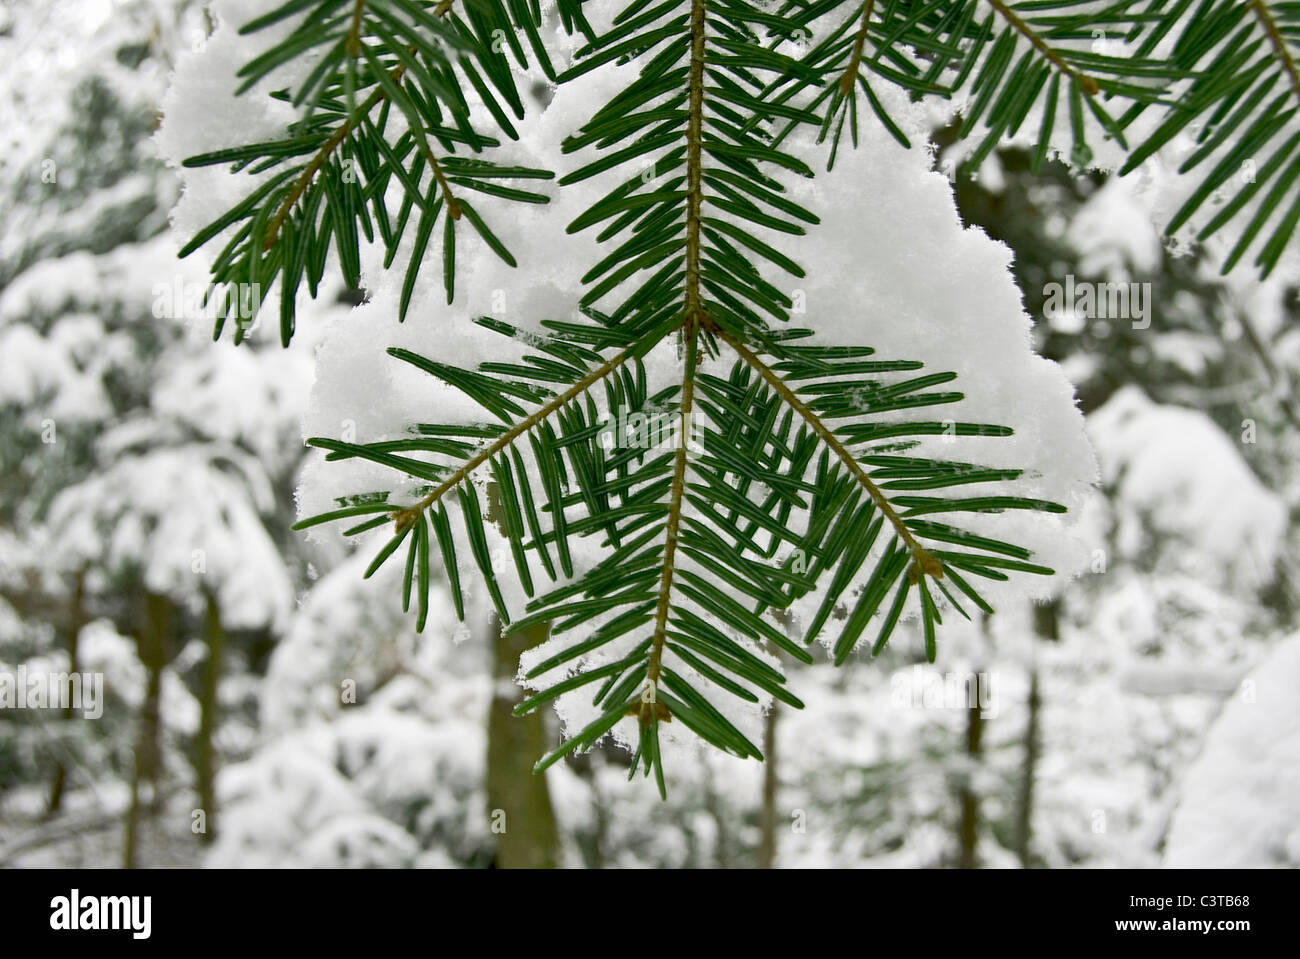 pine tree covered with frost - Stock Image